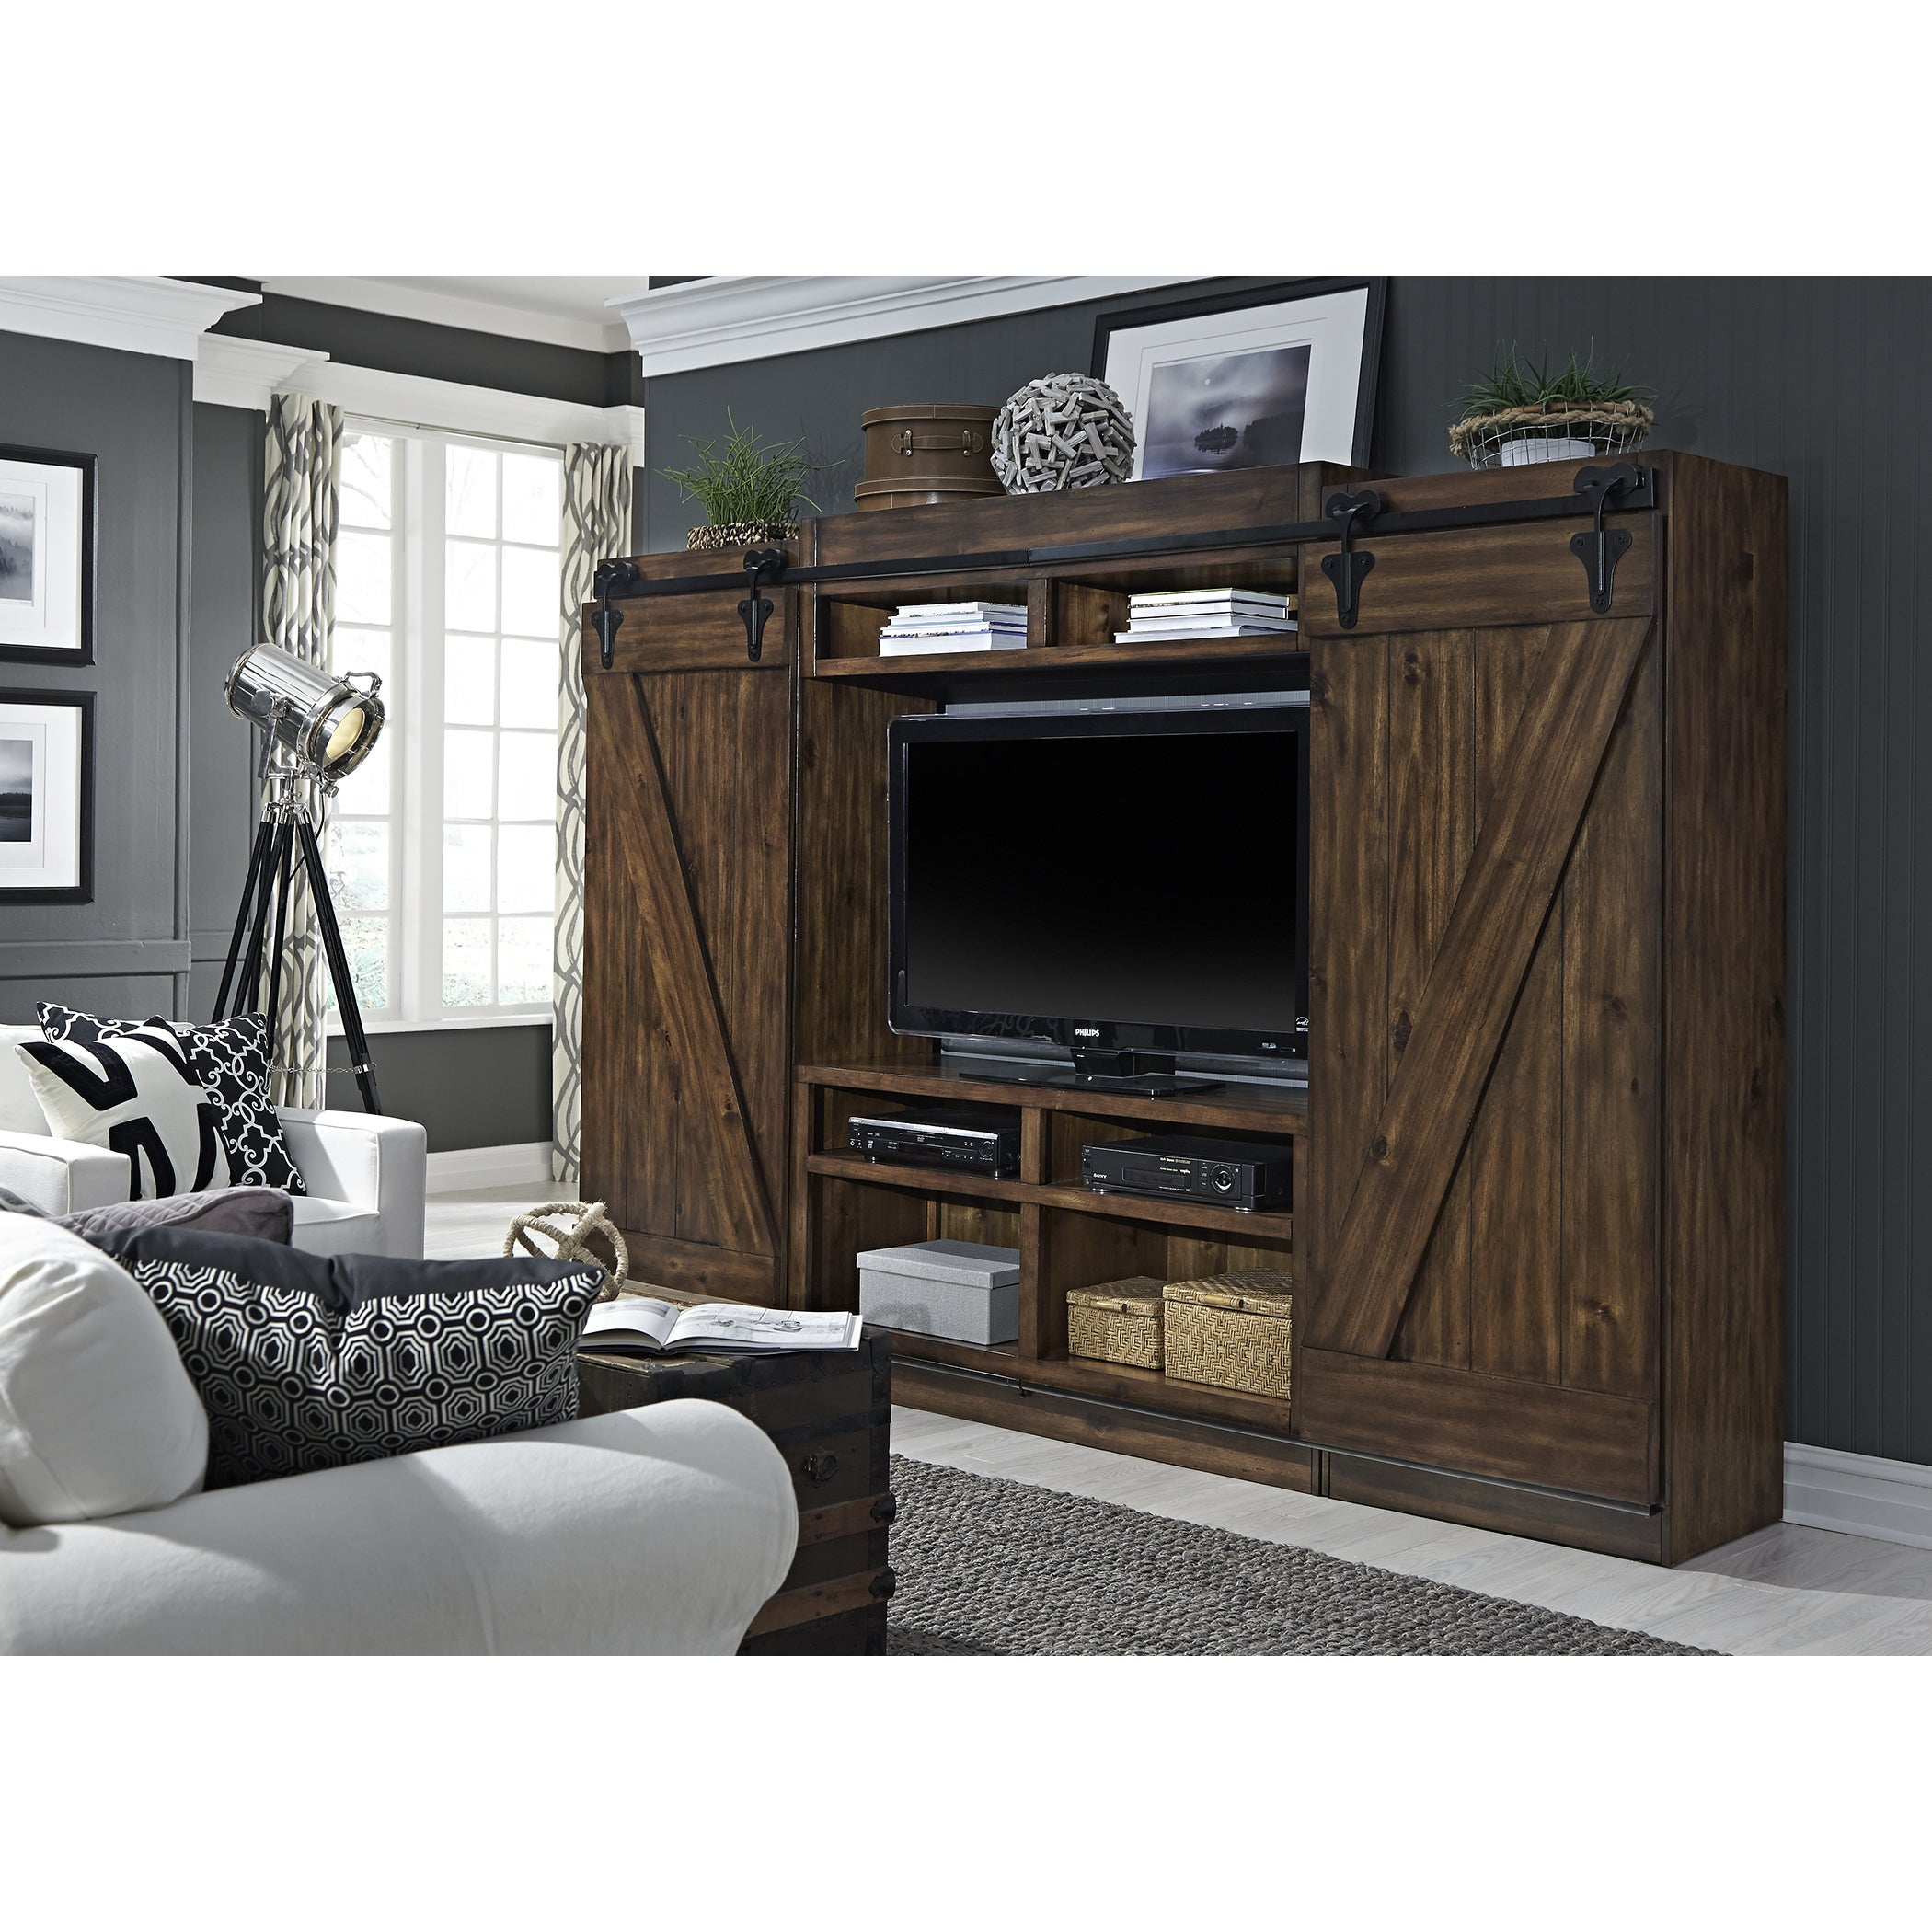 Shop lancaster iii farmhouse rustic tobacco entertainment center with piers free shipping today overstock com 13132809